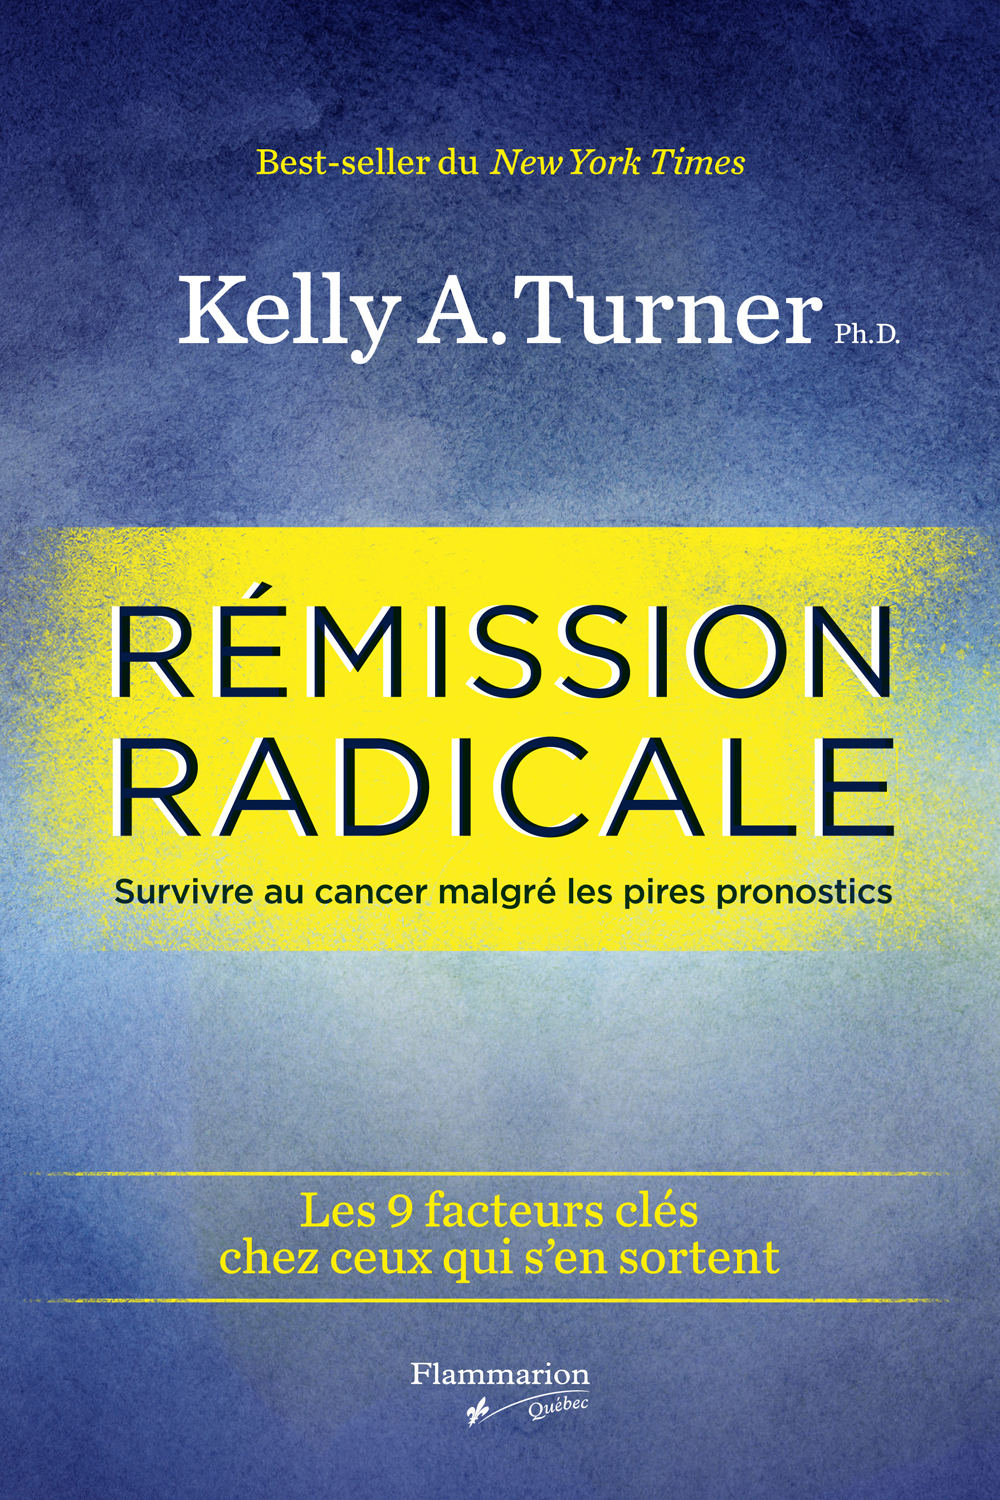 http://cdn.quebecloisirs.com/6458-11221-thickbox/remission-radicale.jpg